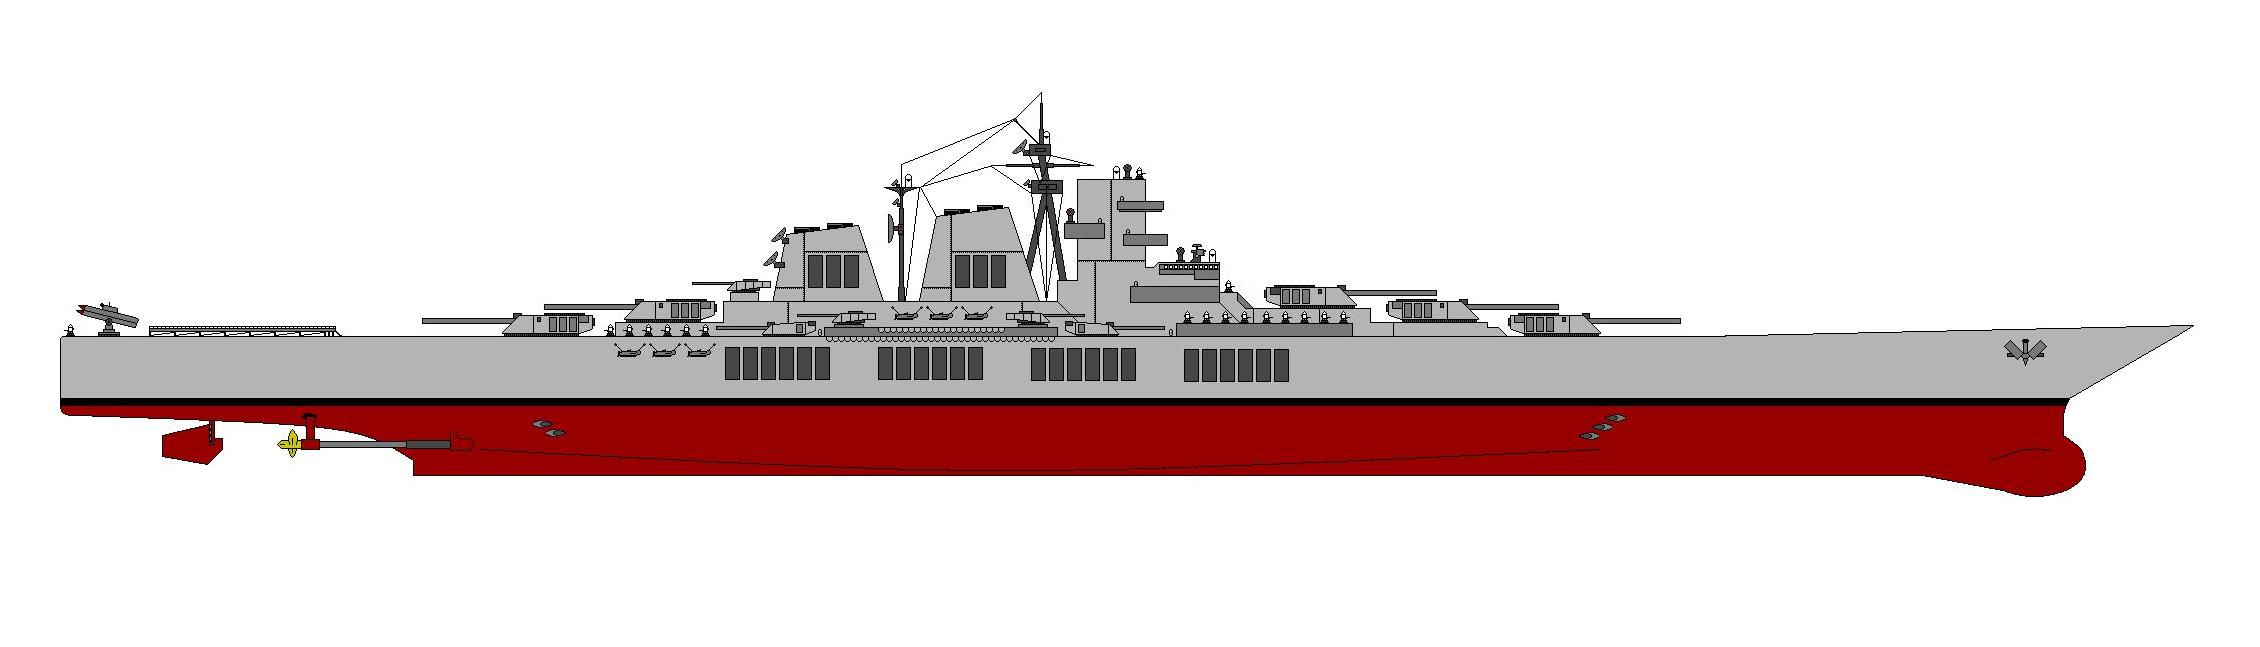 Battleship USS Mastershay by BeBop953 on DeviantArtModern Battleship Design